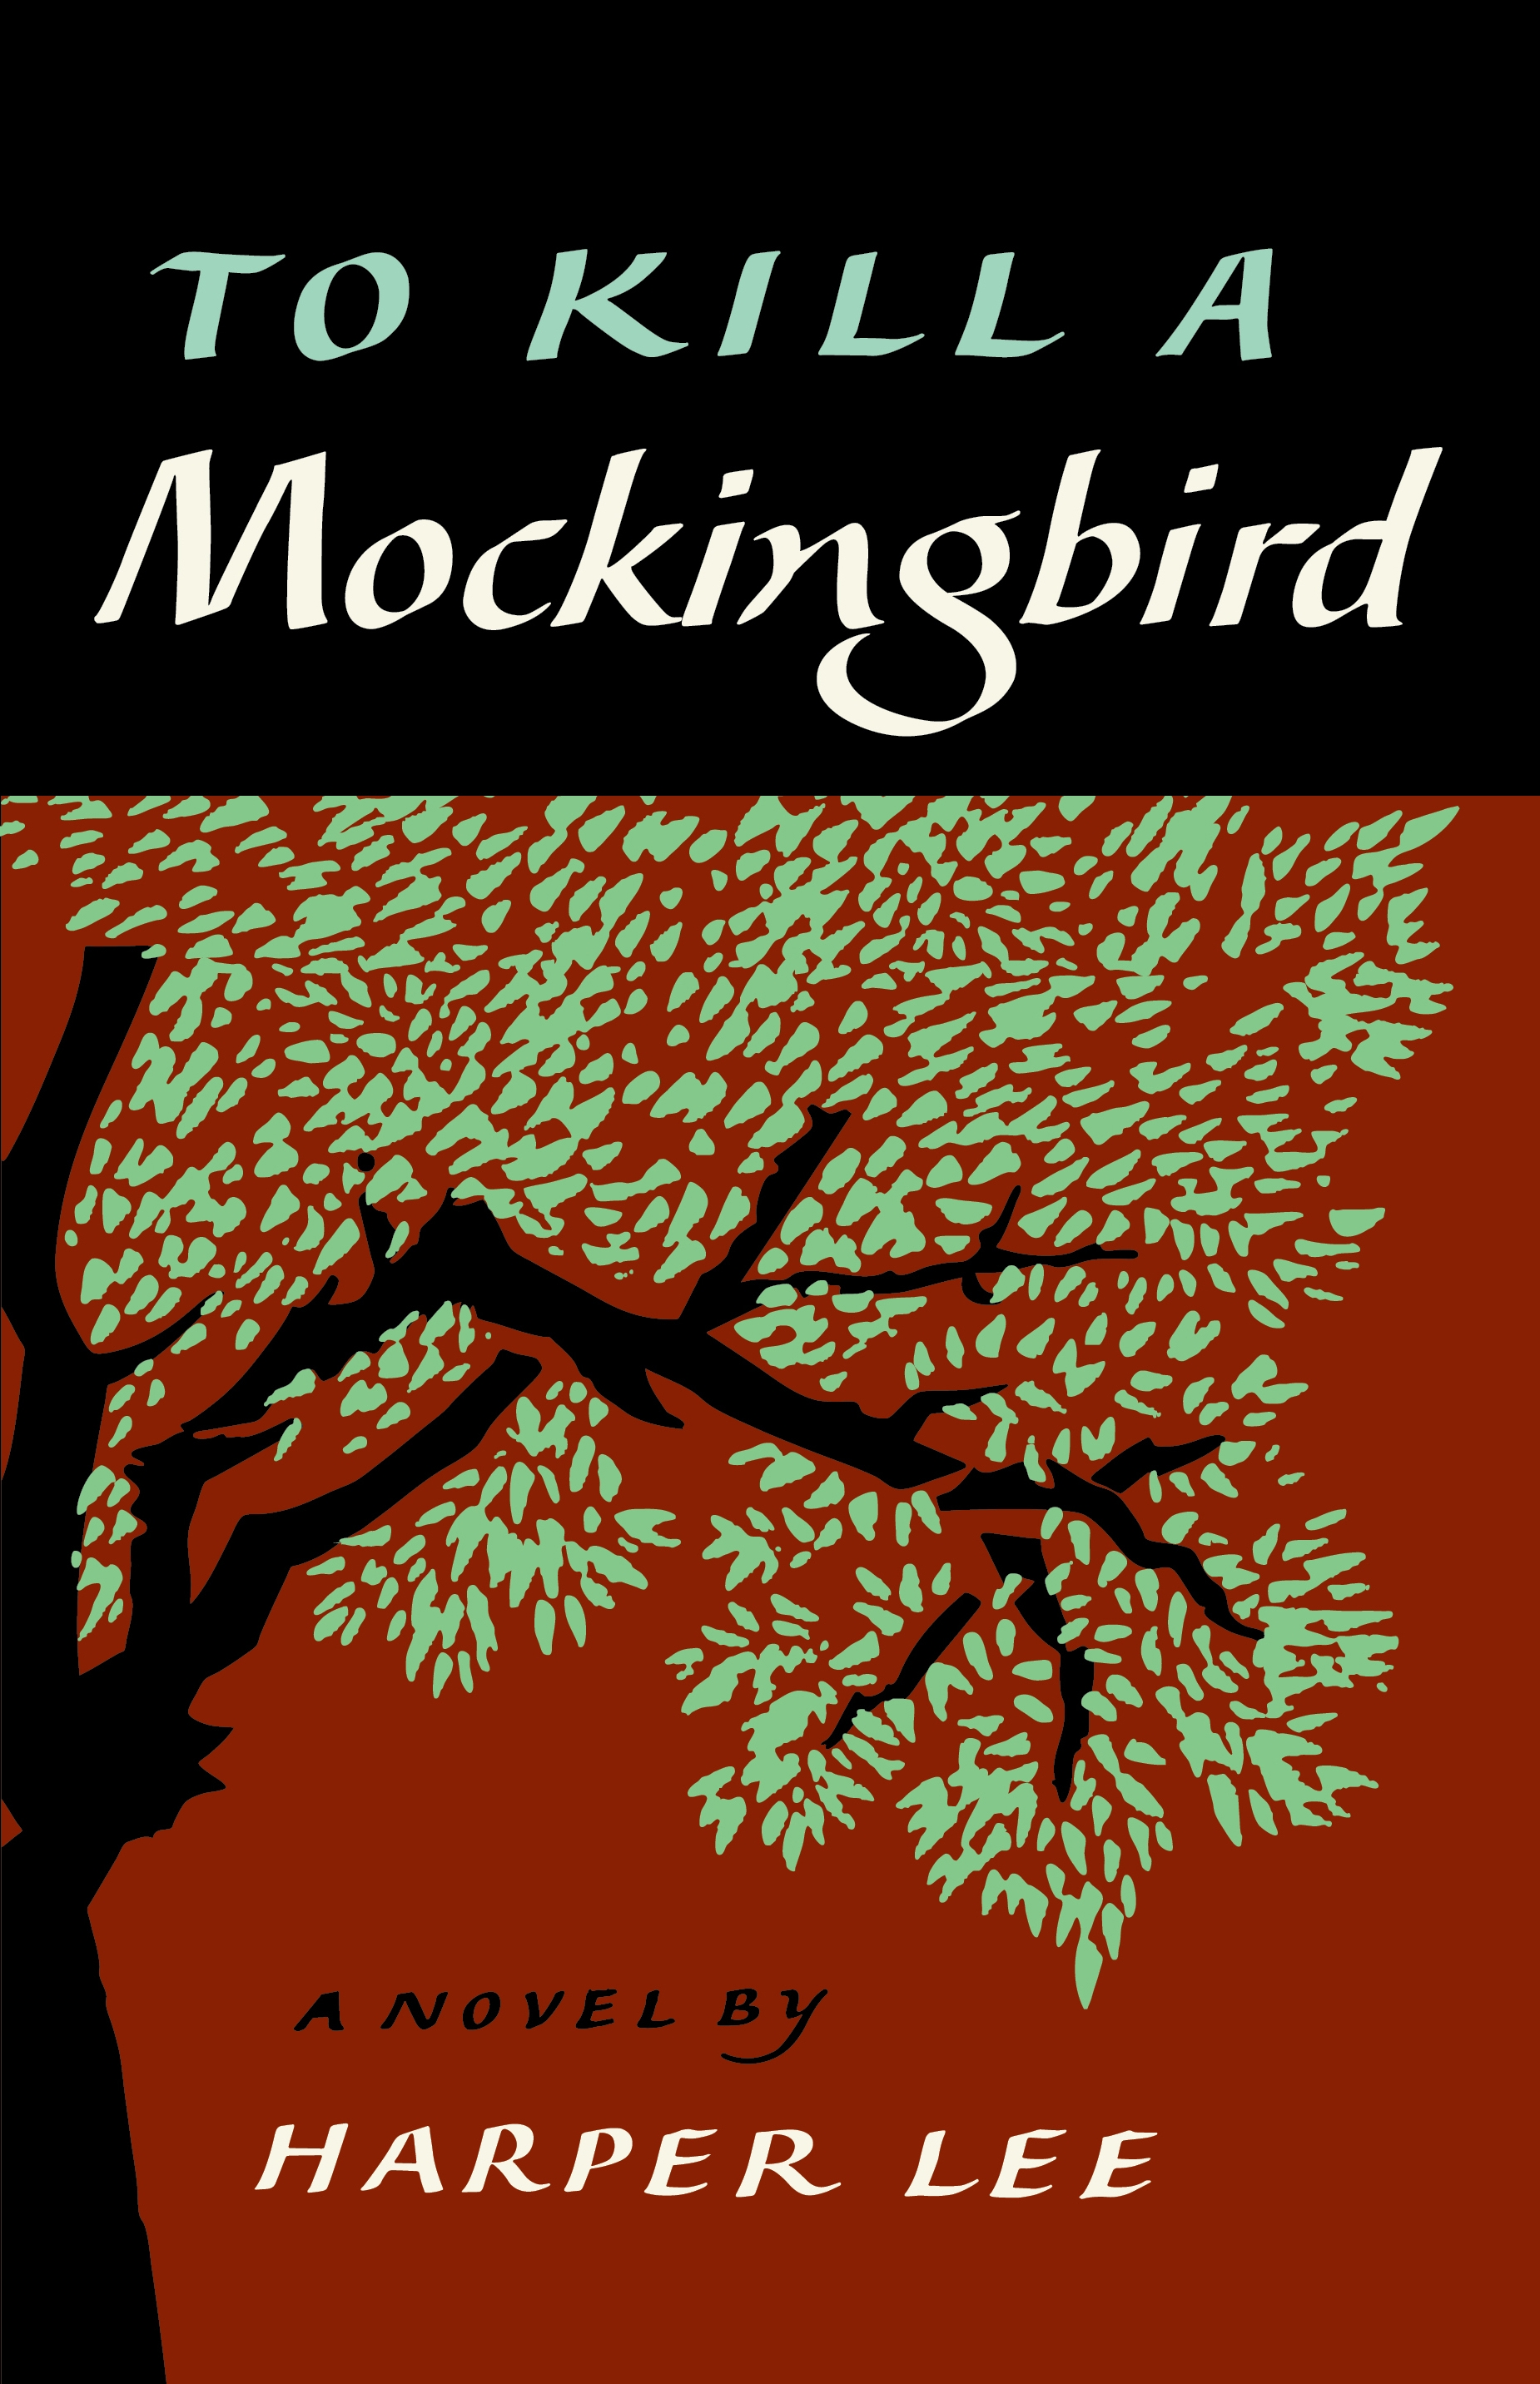 lessons on the evil of prejudice in to kill a mockingbird by harper lee Fictional trial account: scout finch, harper lee's narrator who bears witness to the trial of tom robinson in to kill a mockingbird (chapters 18-20) students may read the report on the scottsboro, ala.